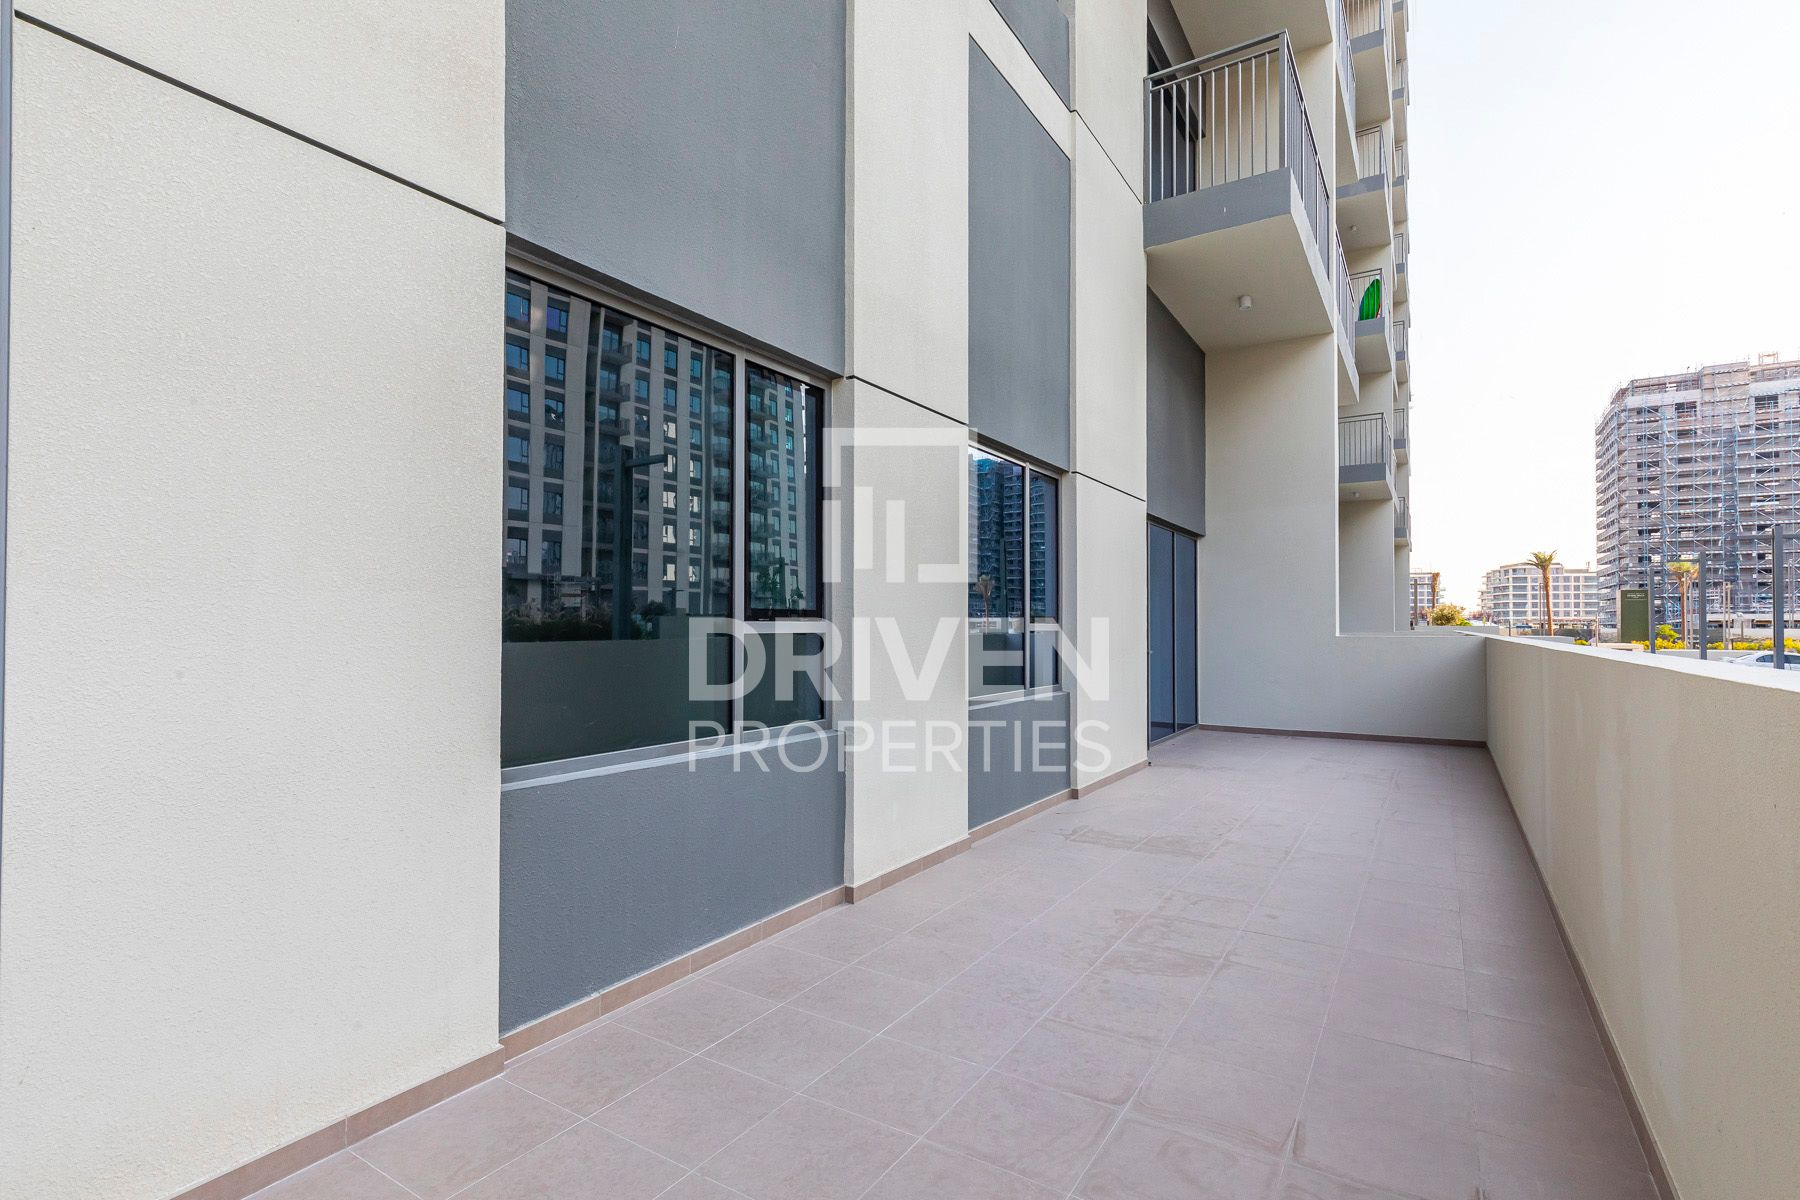 Rare 2 Bed Apartment   Private Courtyard